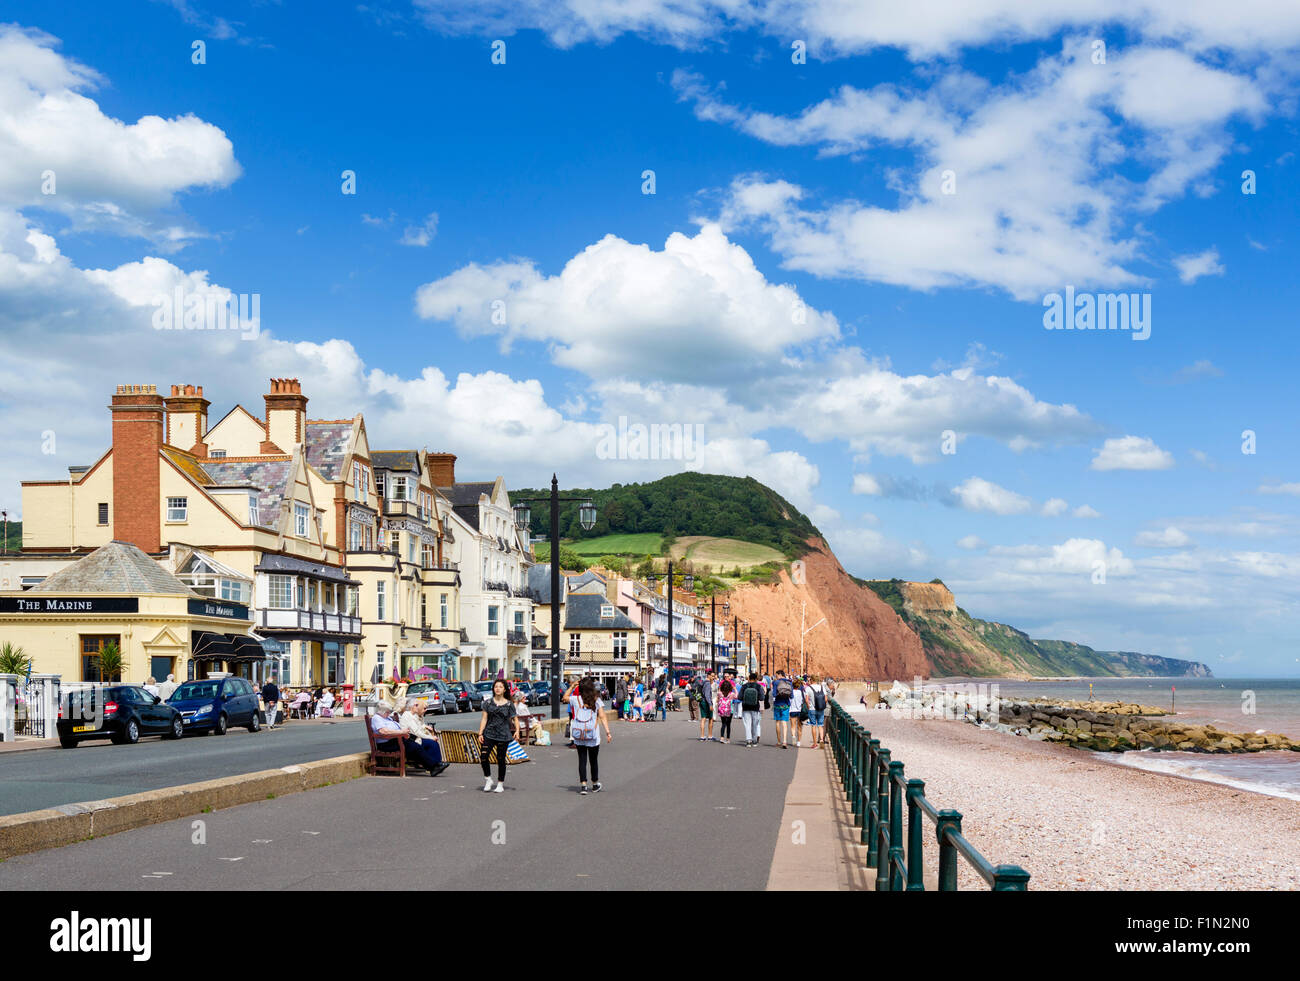 The Esplanade and beach in Sidmouth, Devon, England, UK - Stock Image